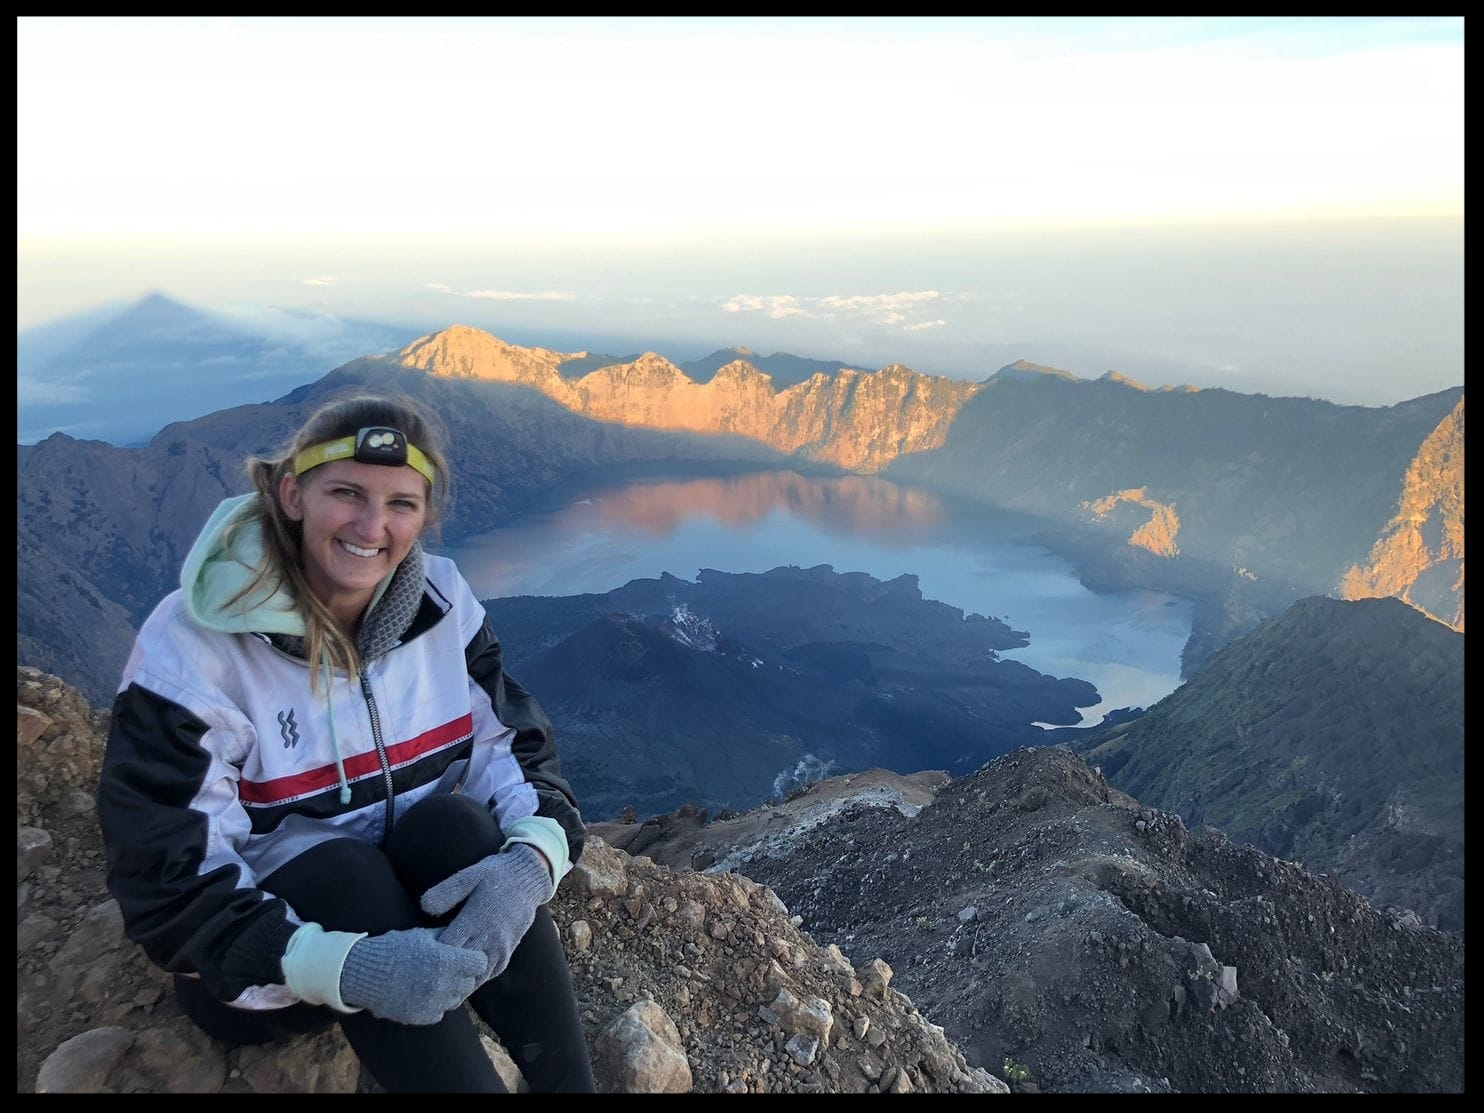 A hiker's harrowing escape from the top of Mount Rinjani after powerful quake - By Rebecca TanAugust 1, 2018Early on Sunday morning, Mackenzie Irwin posed for a photo at the top of Mount Rinjani in Indonesia. Seconds later, she was running for her life.The 28-year-old lawyer from Toronto was steps away from the edge of the volcanic crater at the top of the mountain when a 6.4-magnitude earthquake struck. The ground around her began shaking violently, sending her falling toward her Indonesian guide. Then she saw the ledge...READ MORE